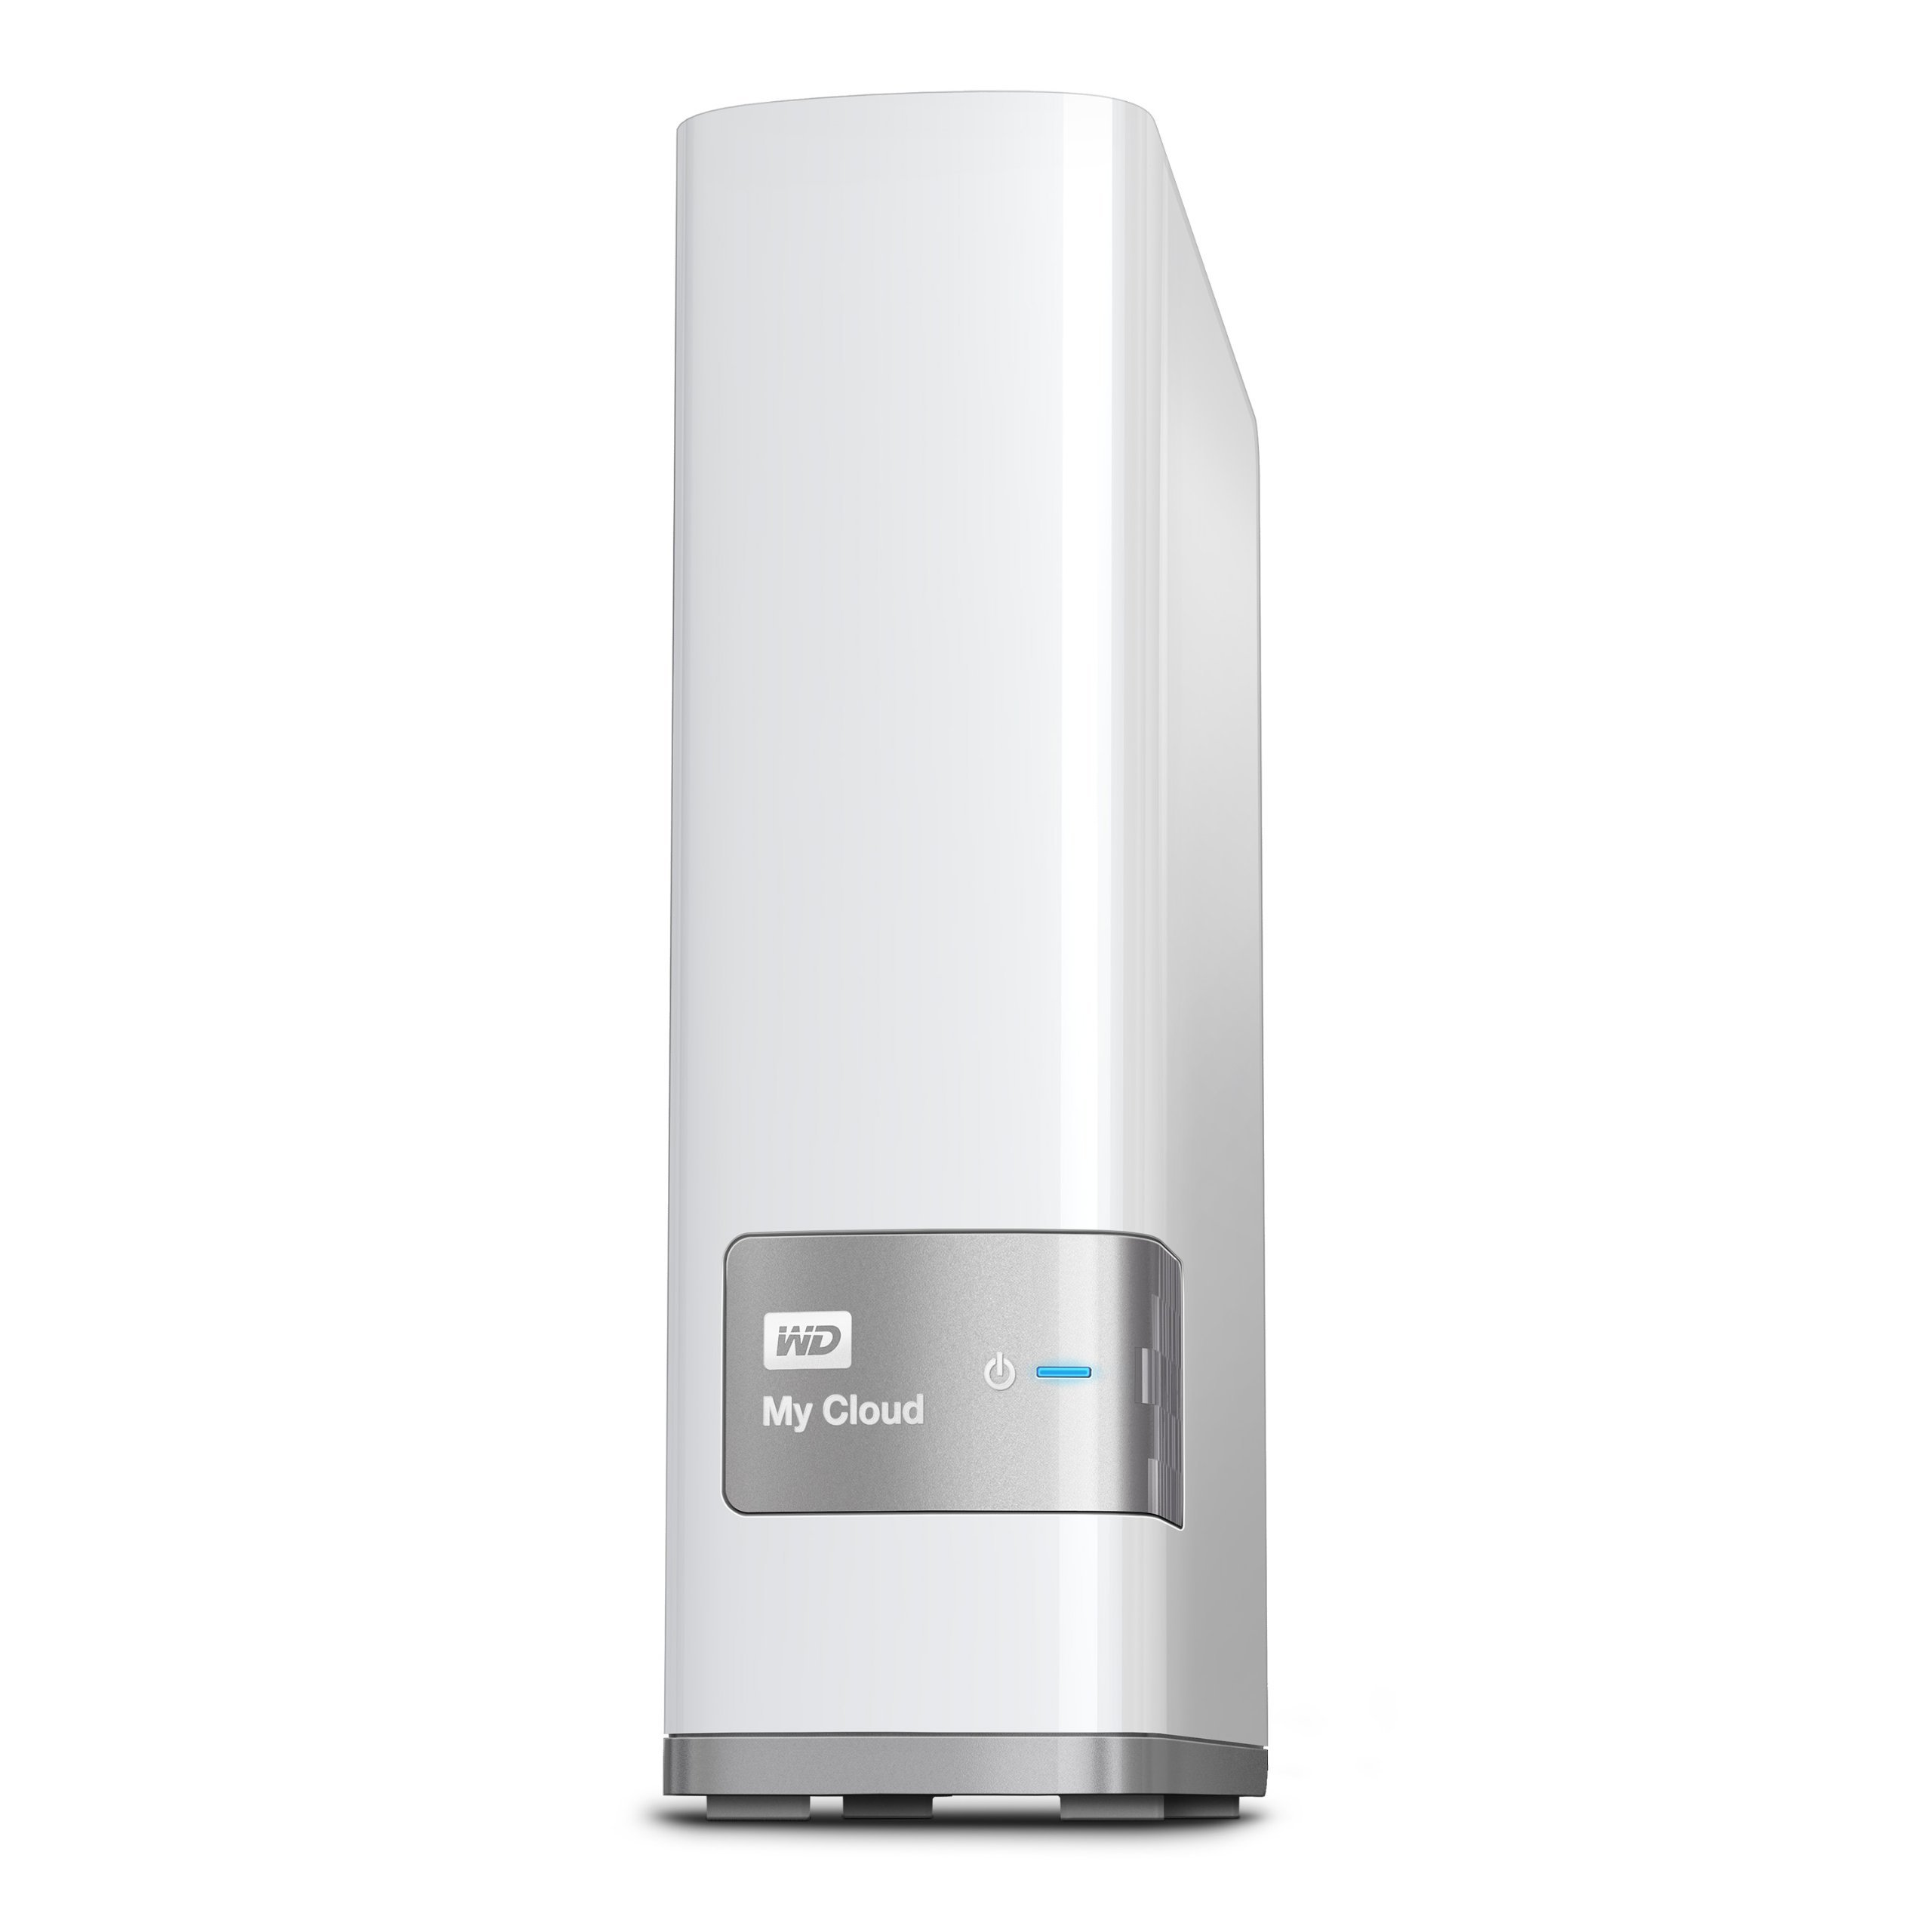 WD 2TB My Cloud Personal Network Attached Storage - NAS - WDBCTL0020HWT-NESN (Renewed) by Western Digital